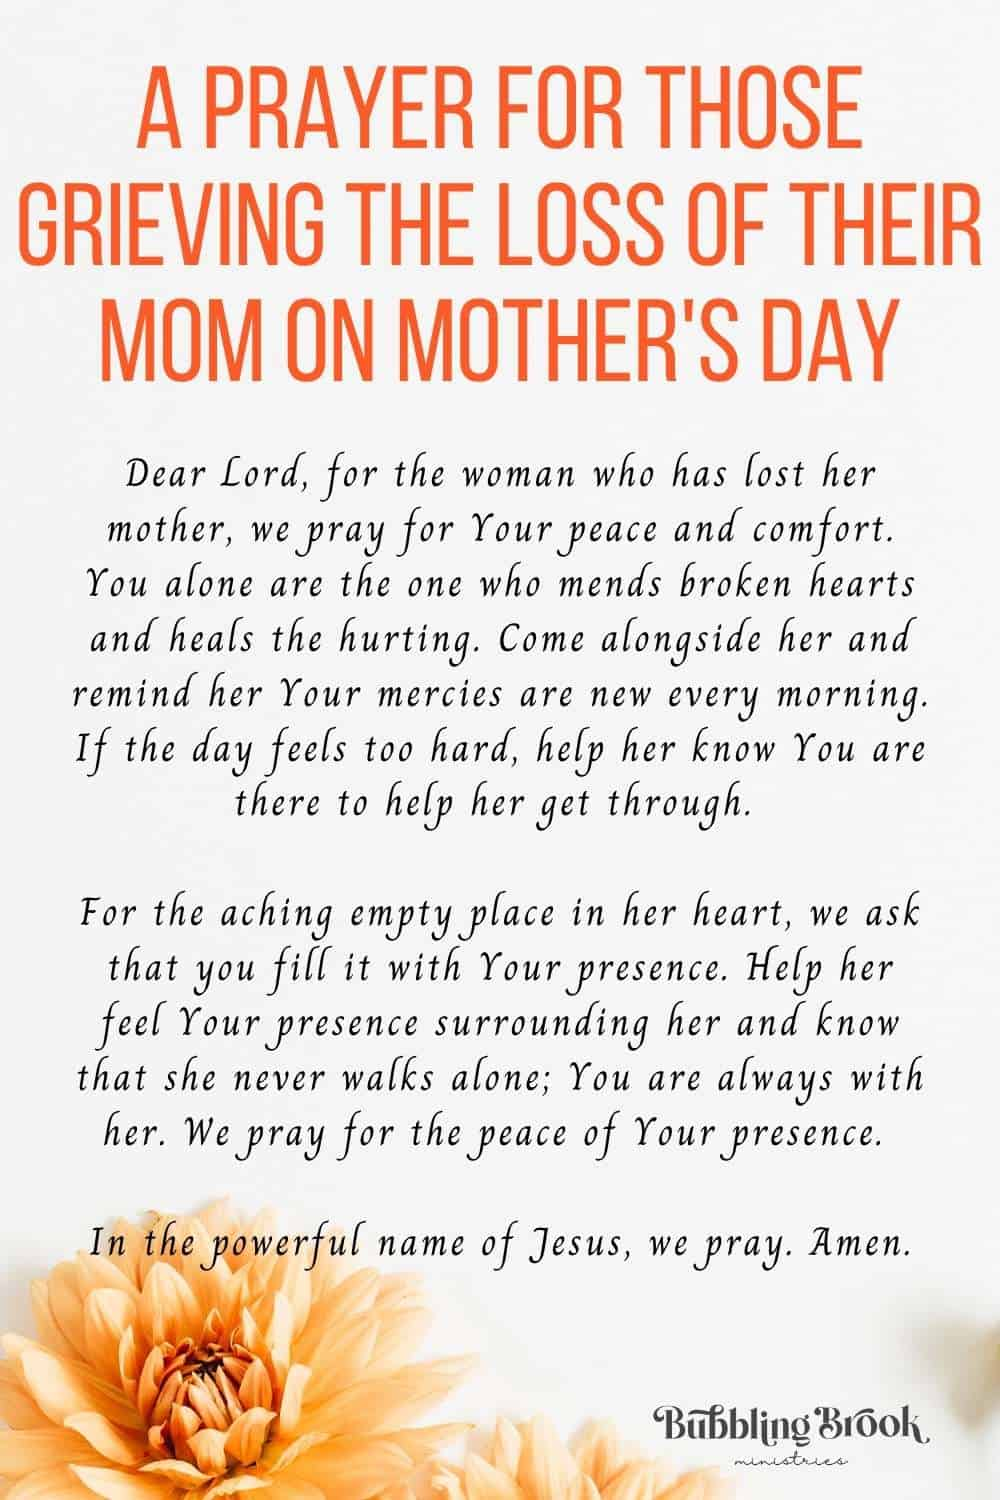 A Prayer For Those Grieving the Loss of their Mom on Mother's Day